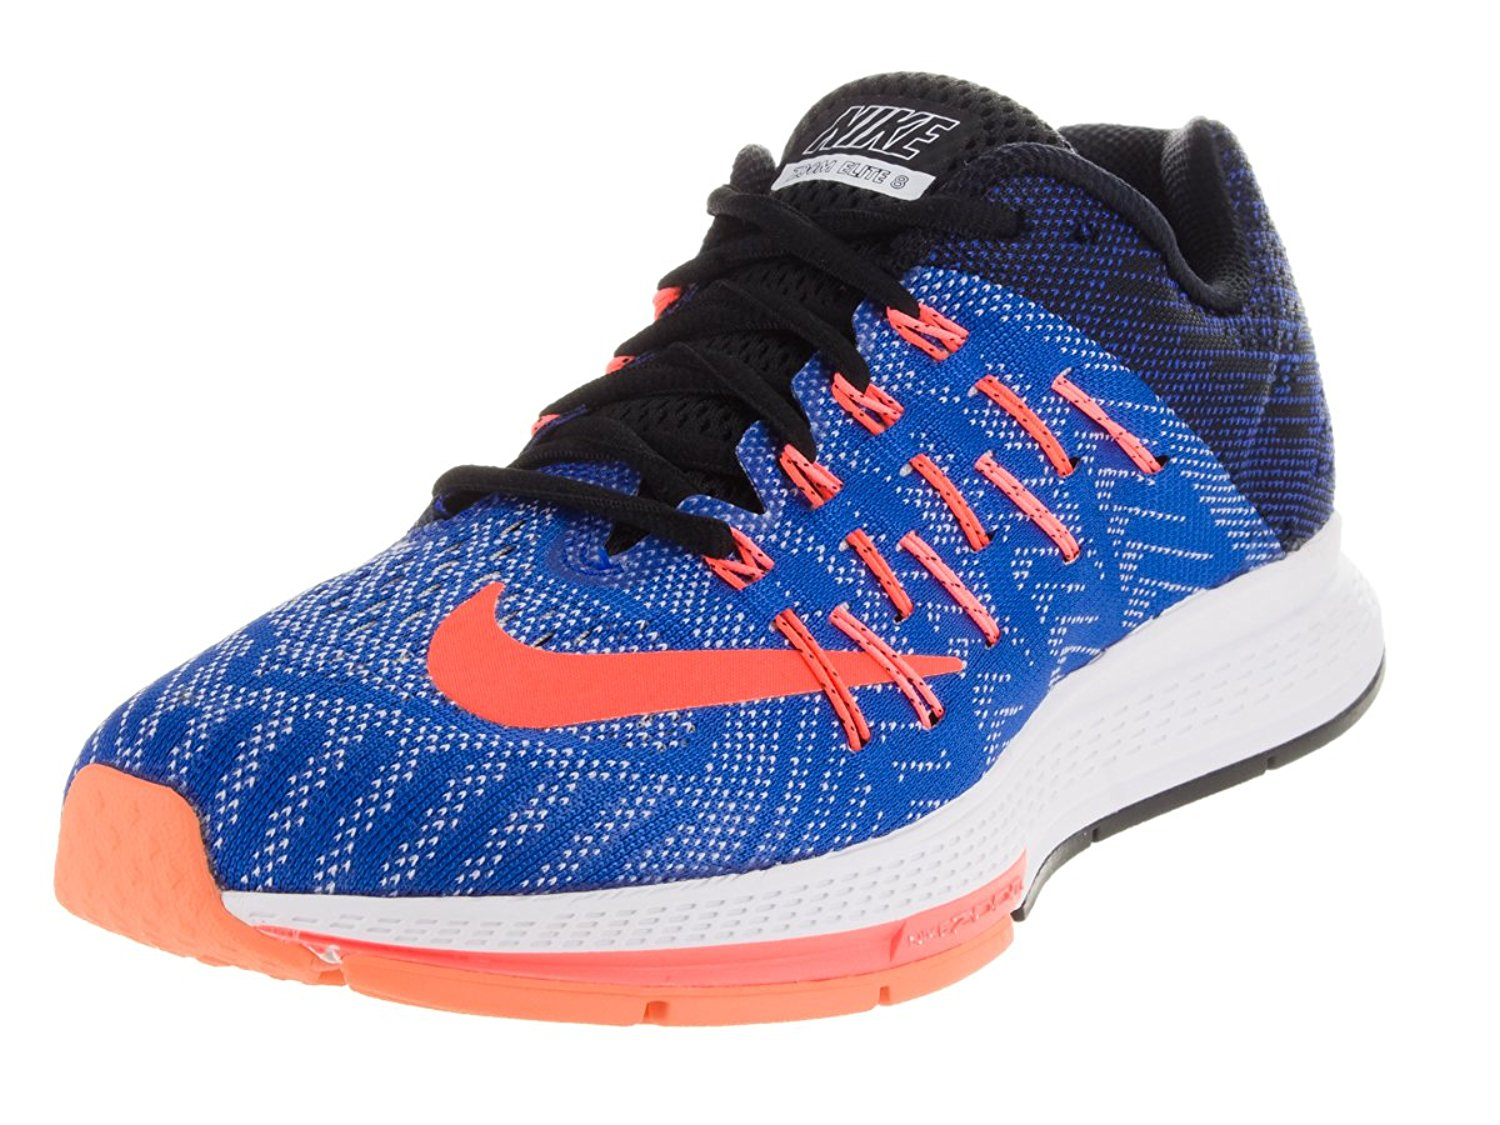 Nike Women's Air Zoom Elite 8 Running Shoe